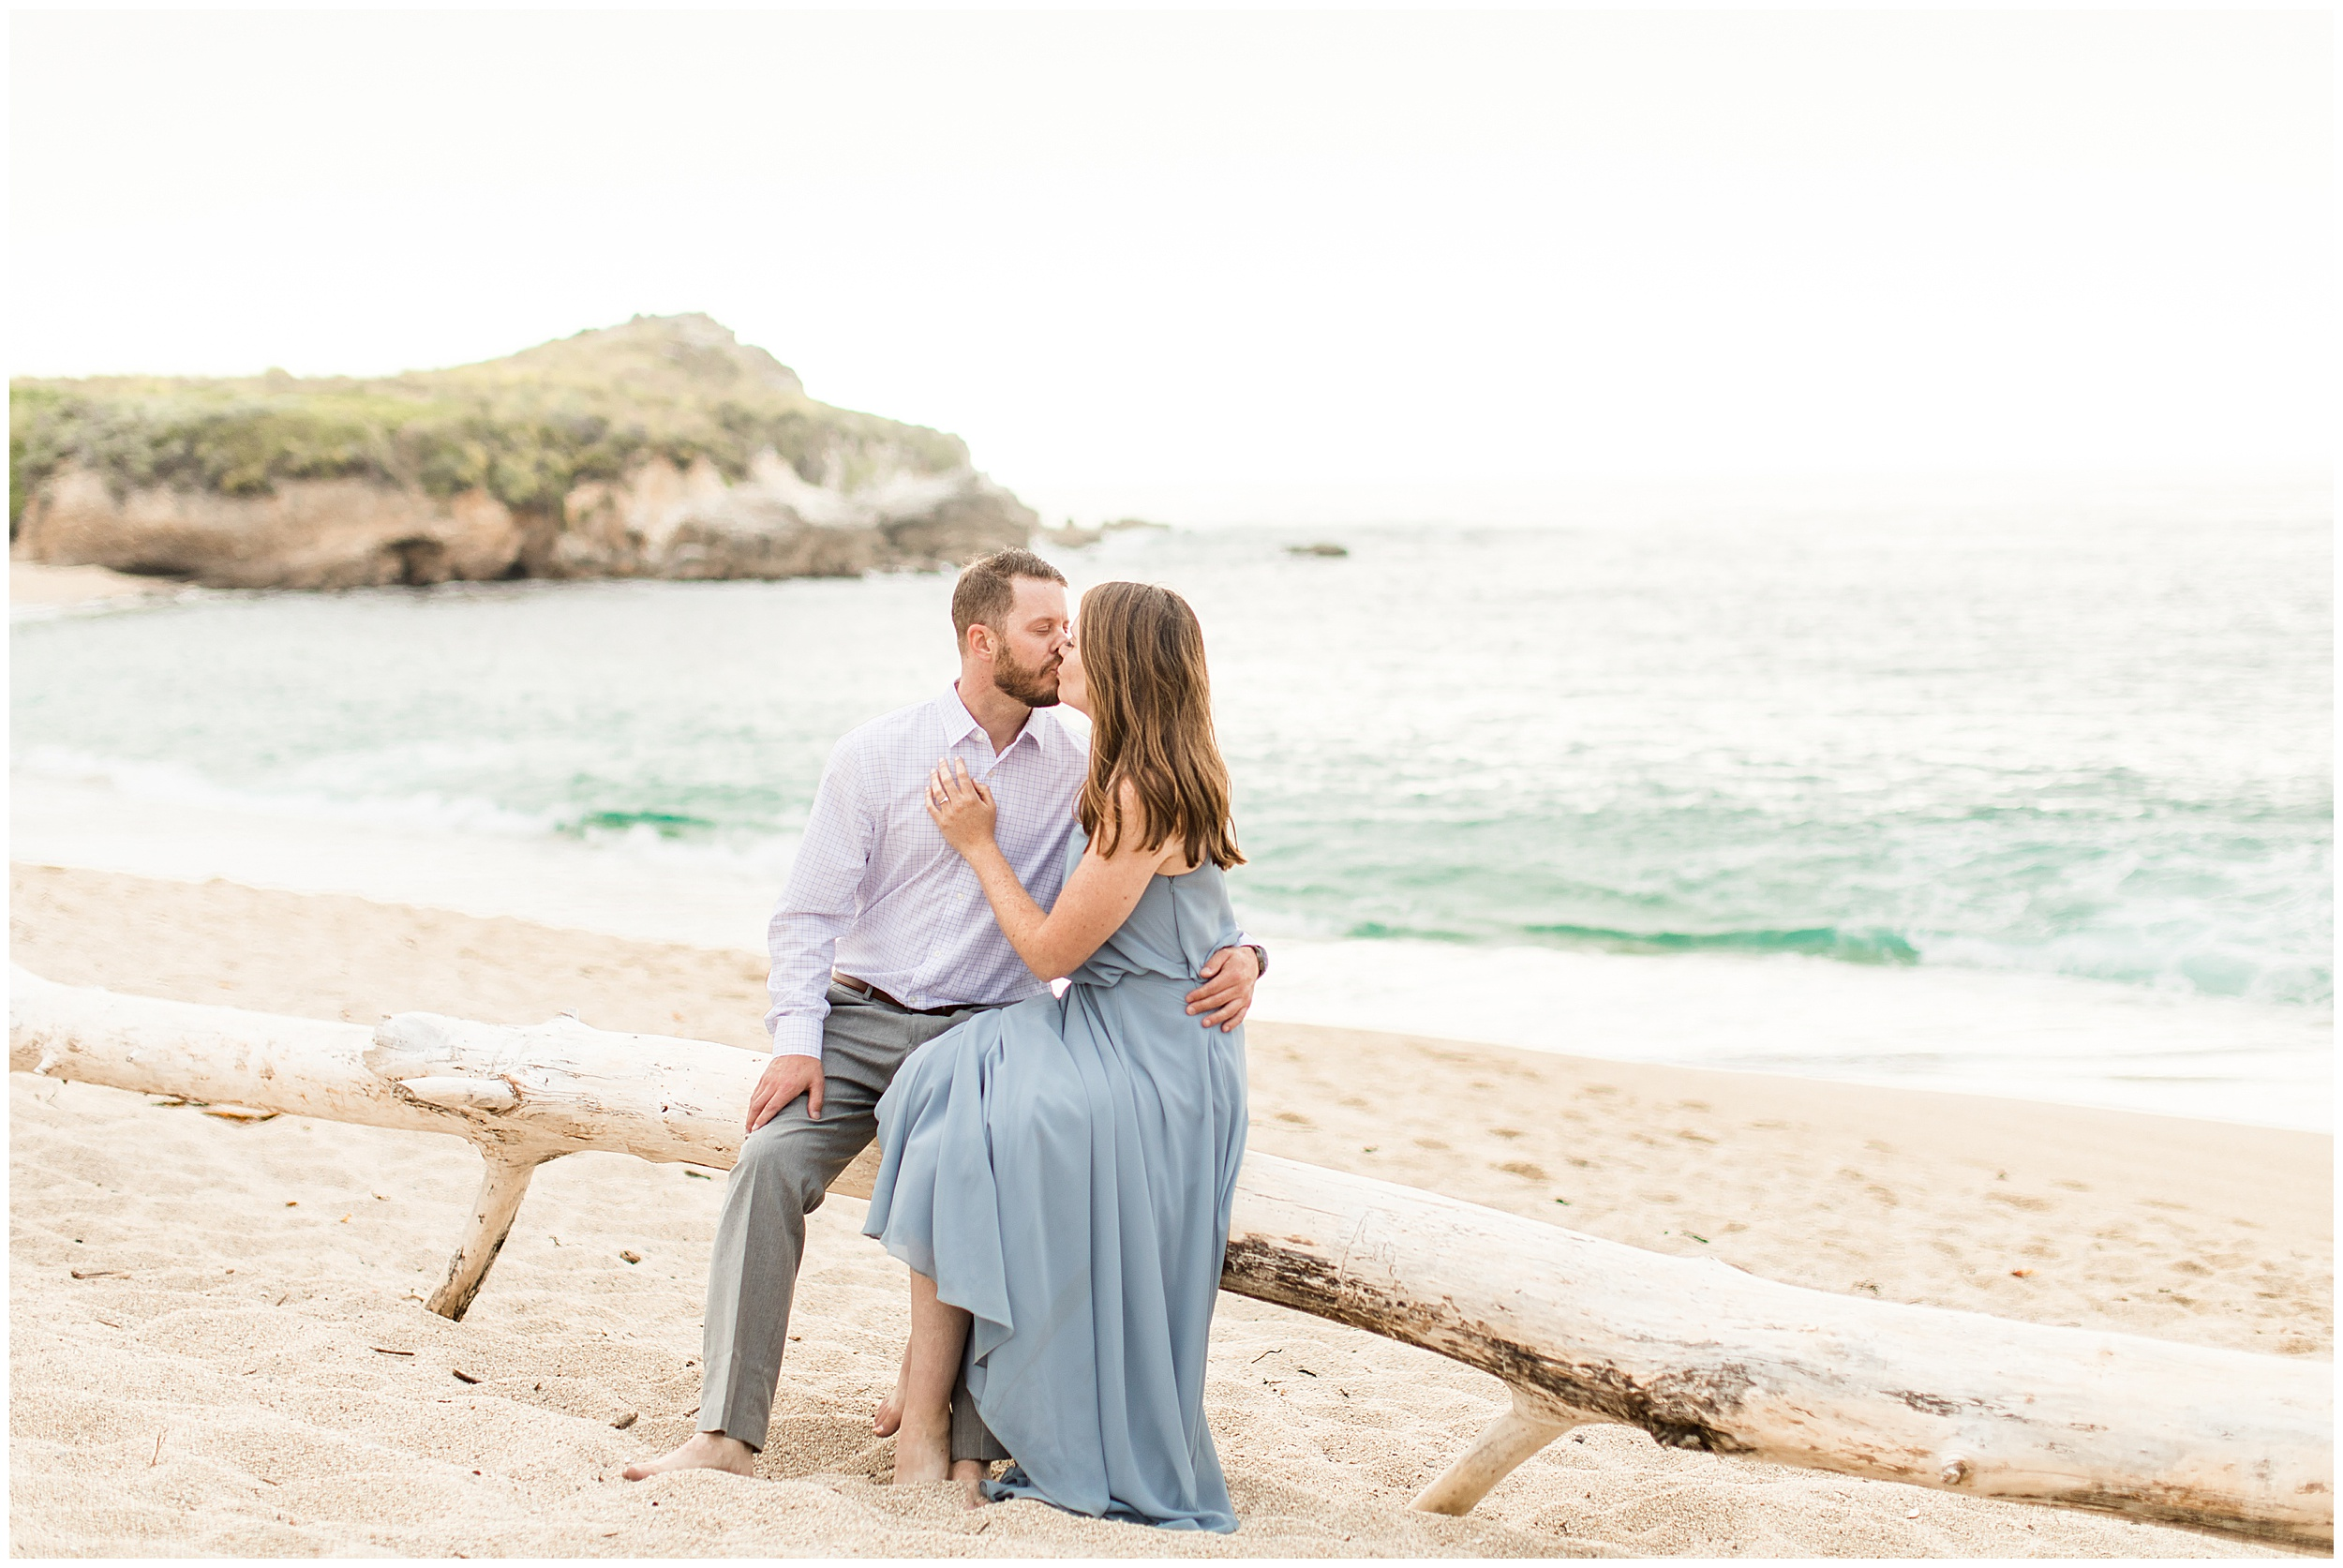 2019 carmel by the sea surprise proposal engagement session wedding photographer angela sue photography_0038.jpg